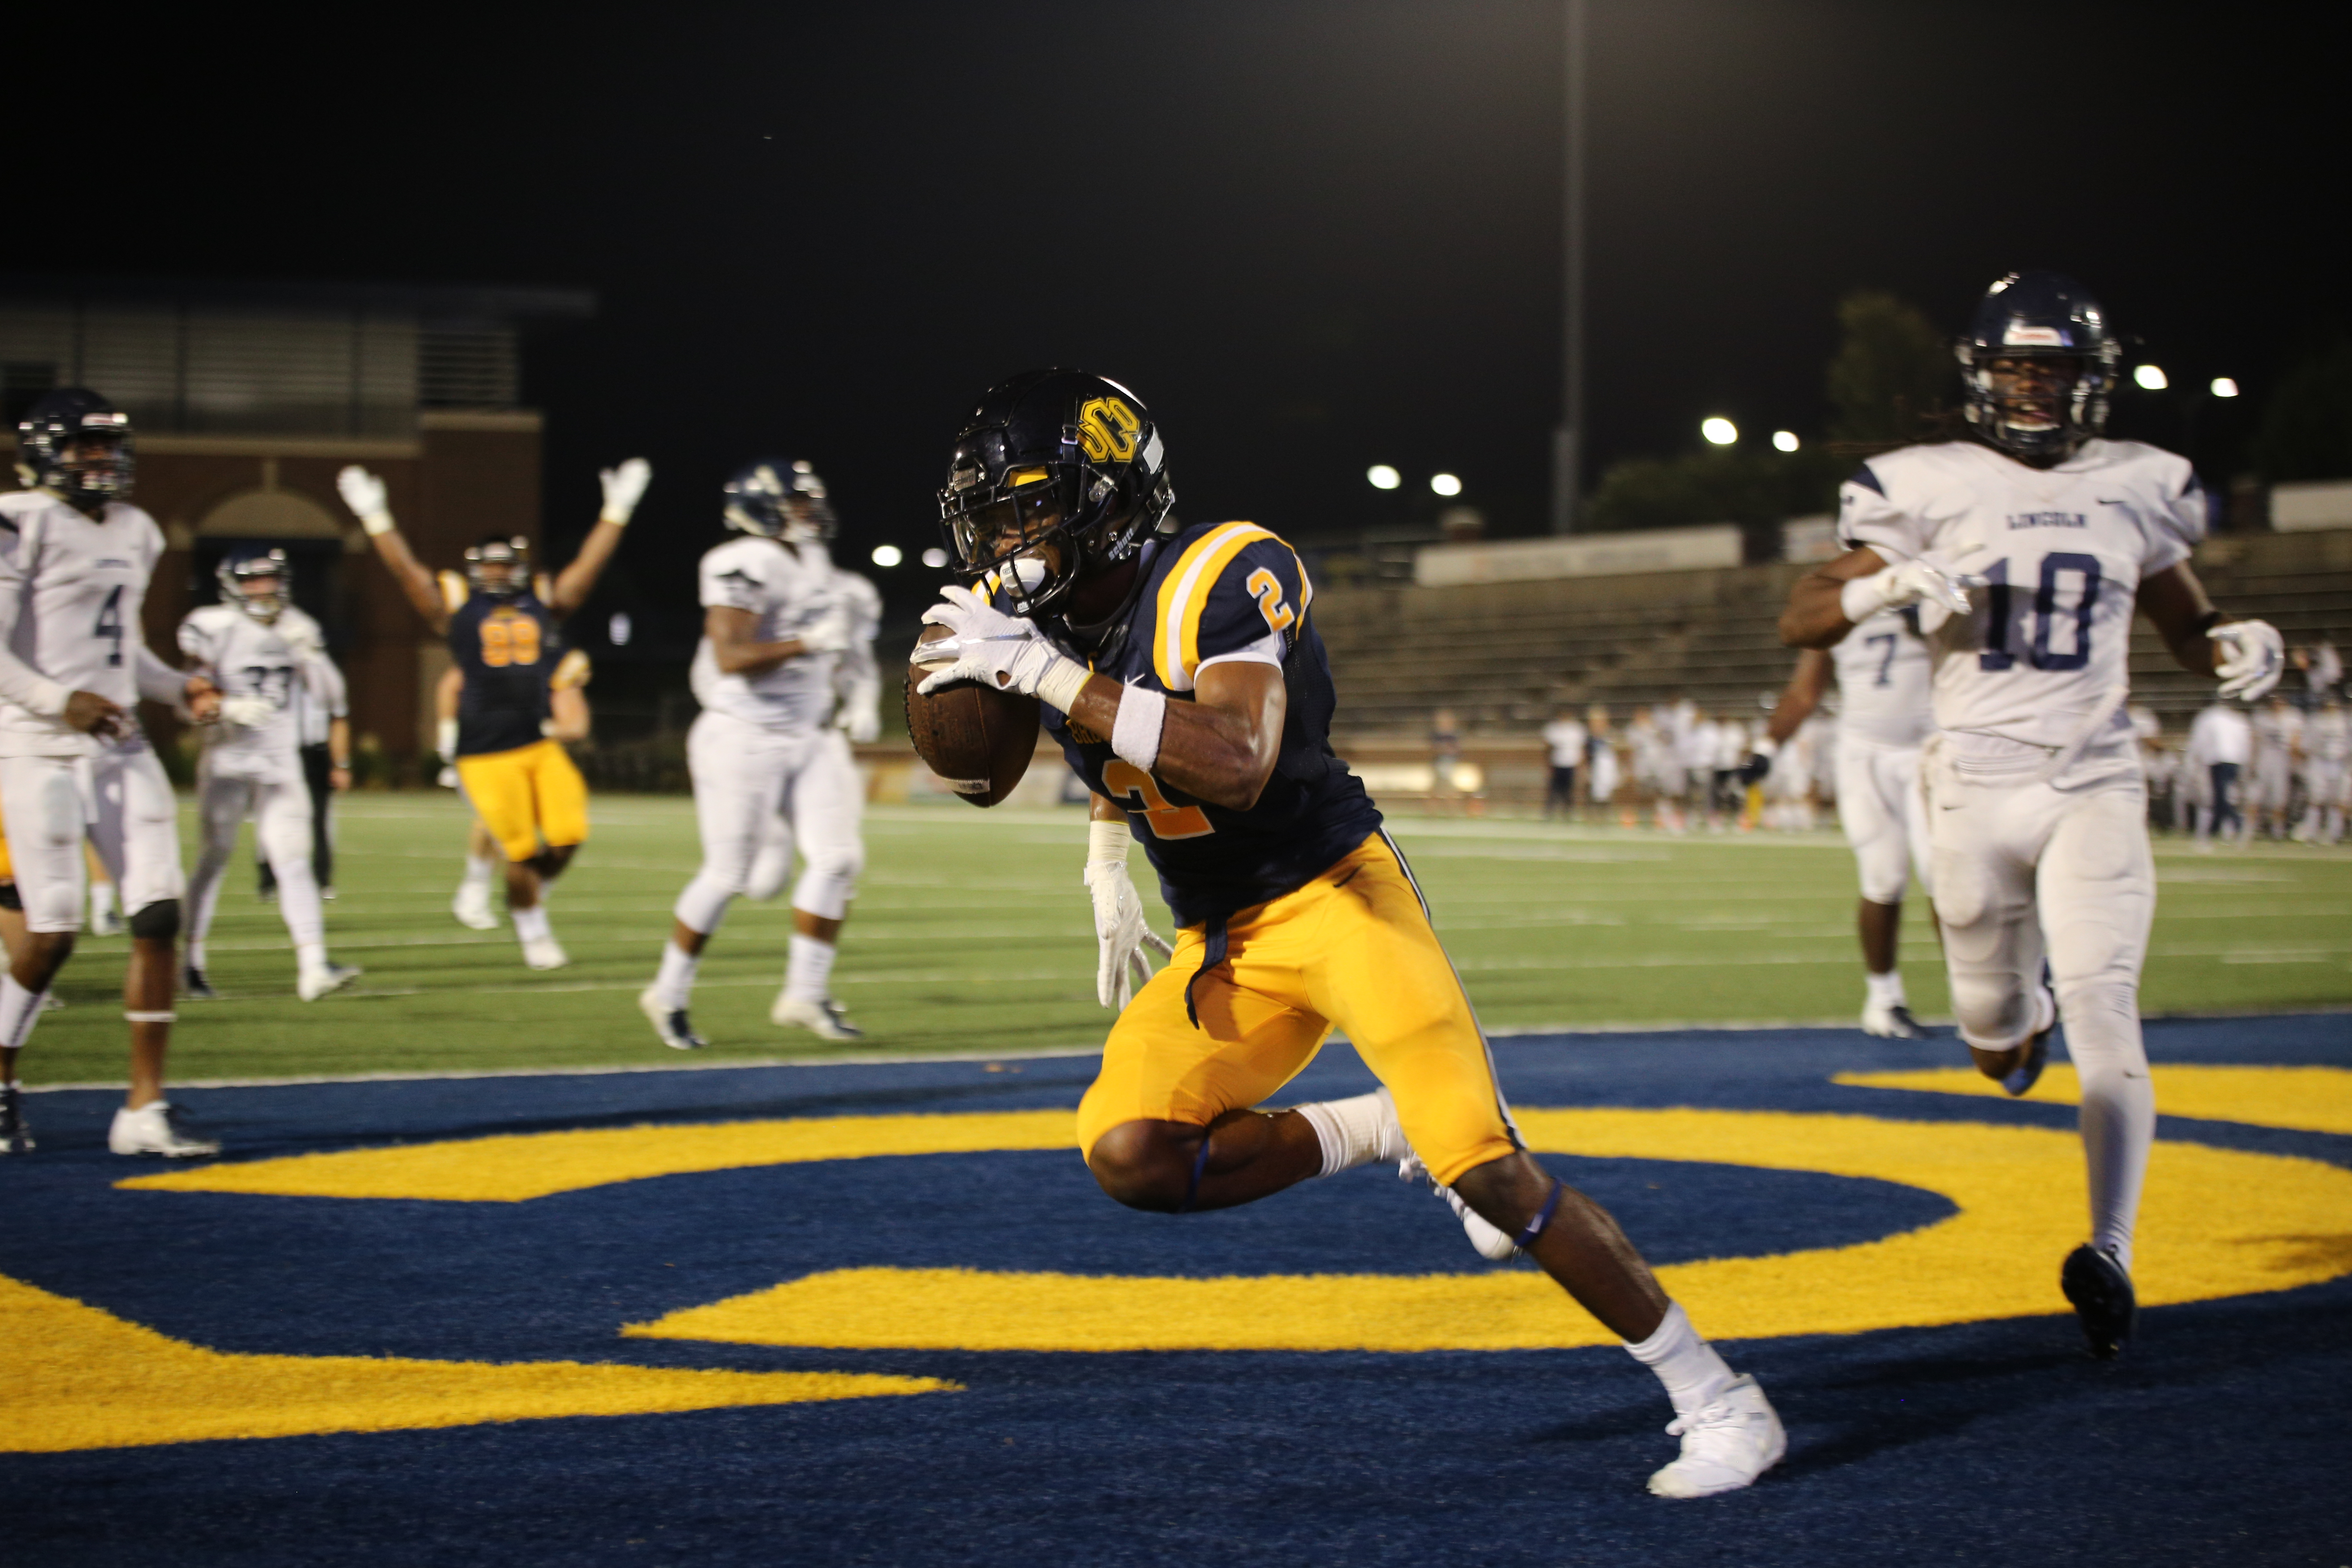 UCO Scores Nine Touchdowns in Historic Win